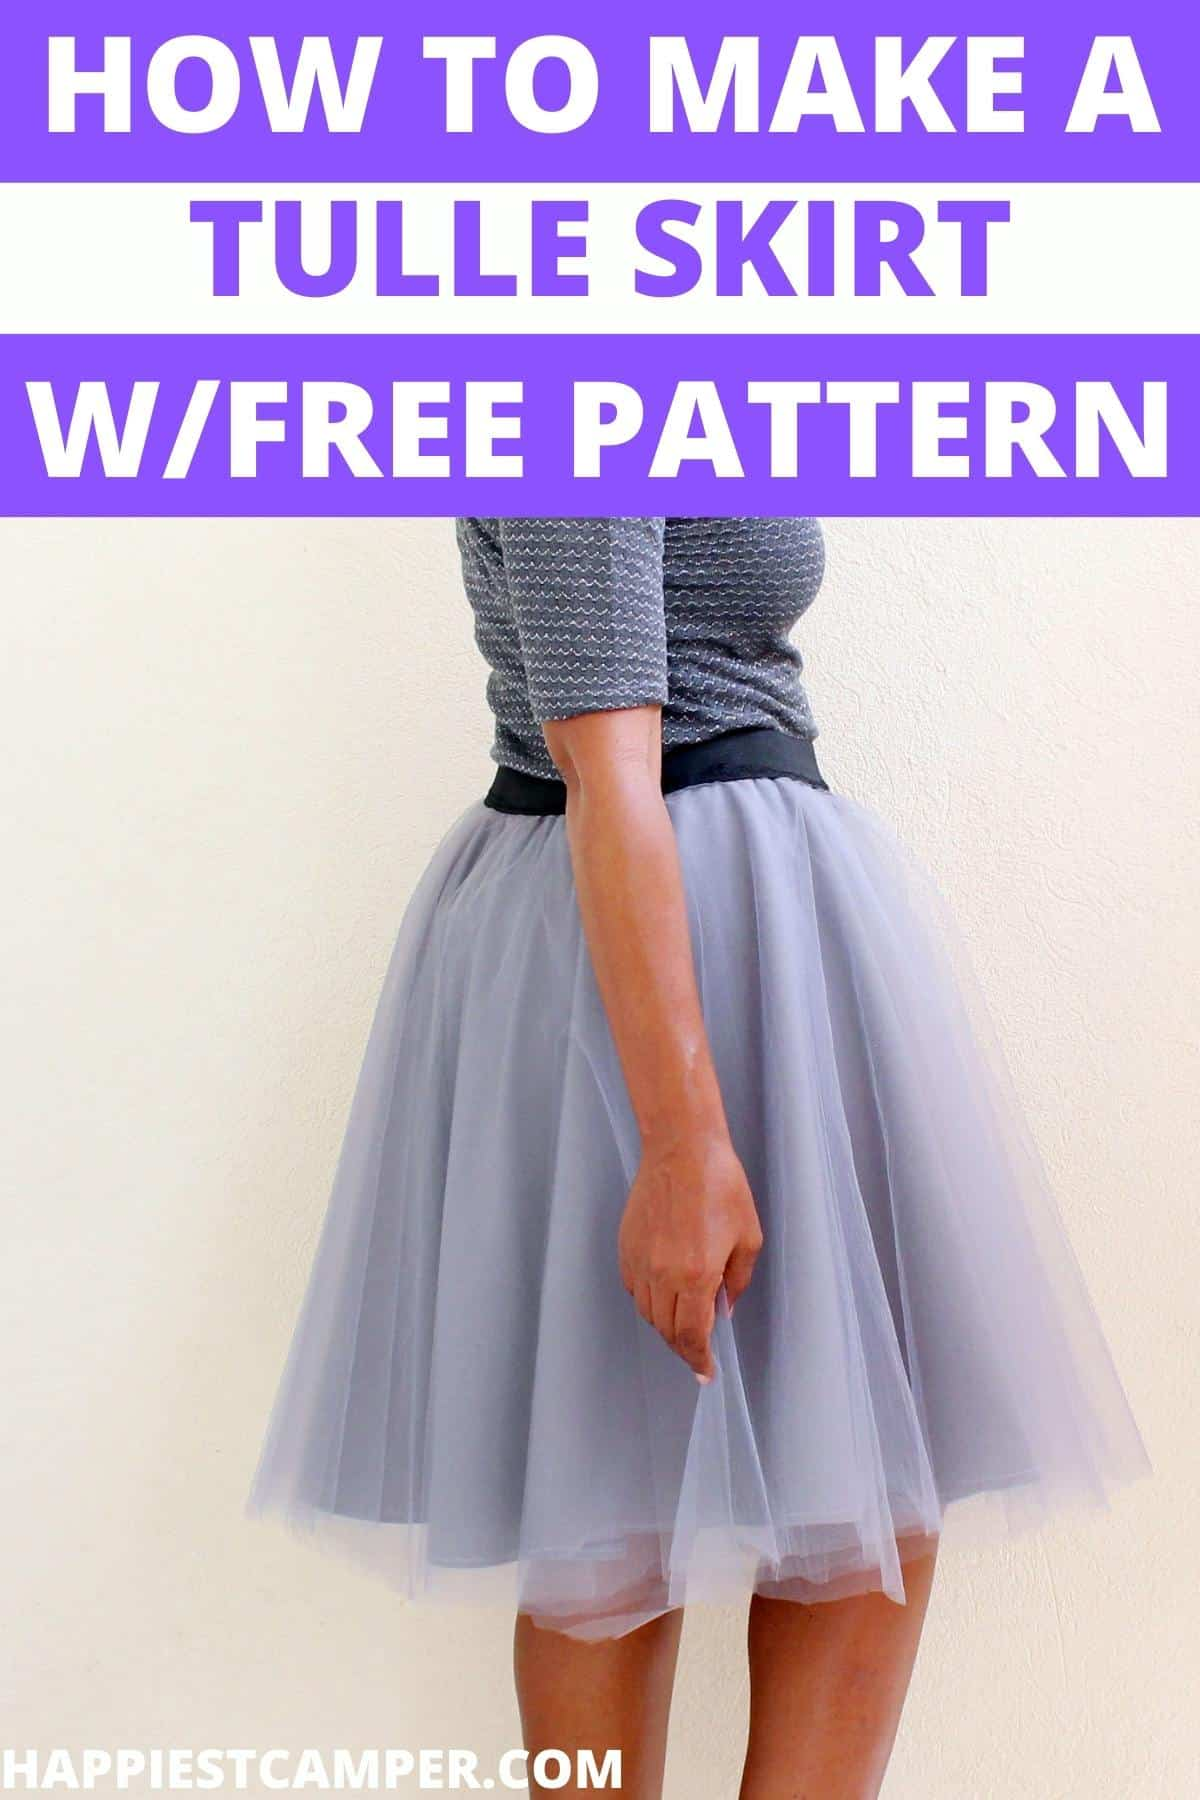 How To Make A Tulle Skirt With Free Pattern